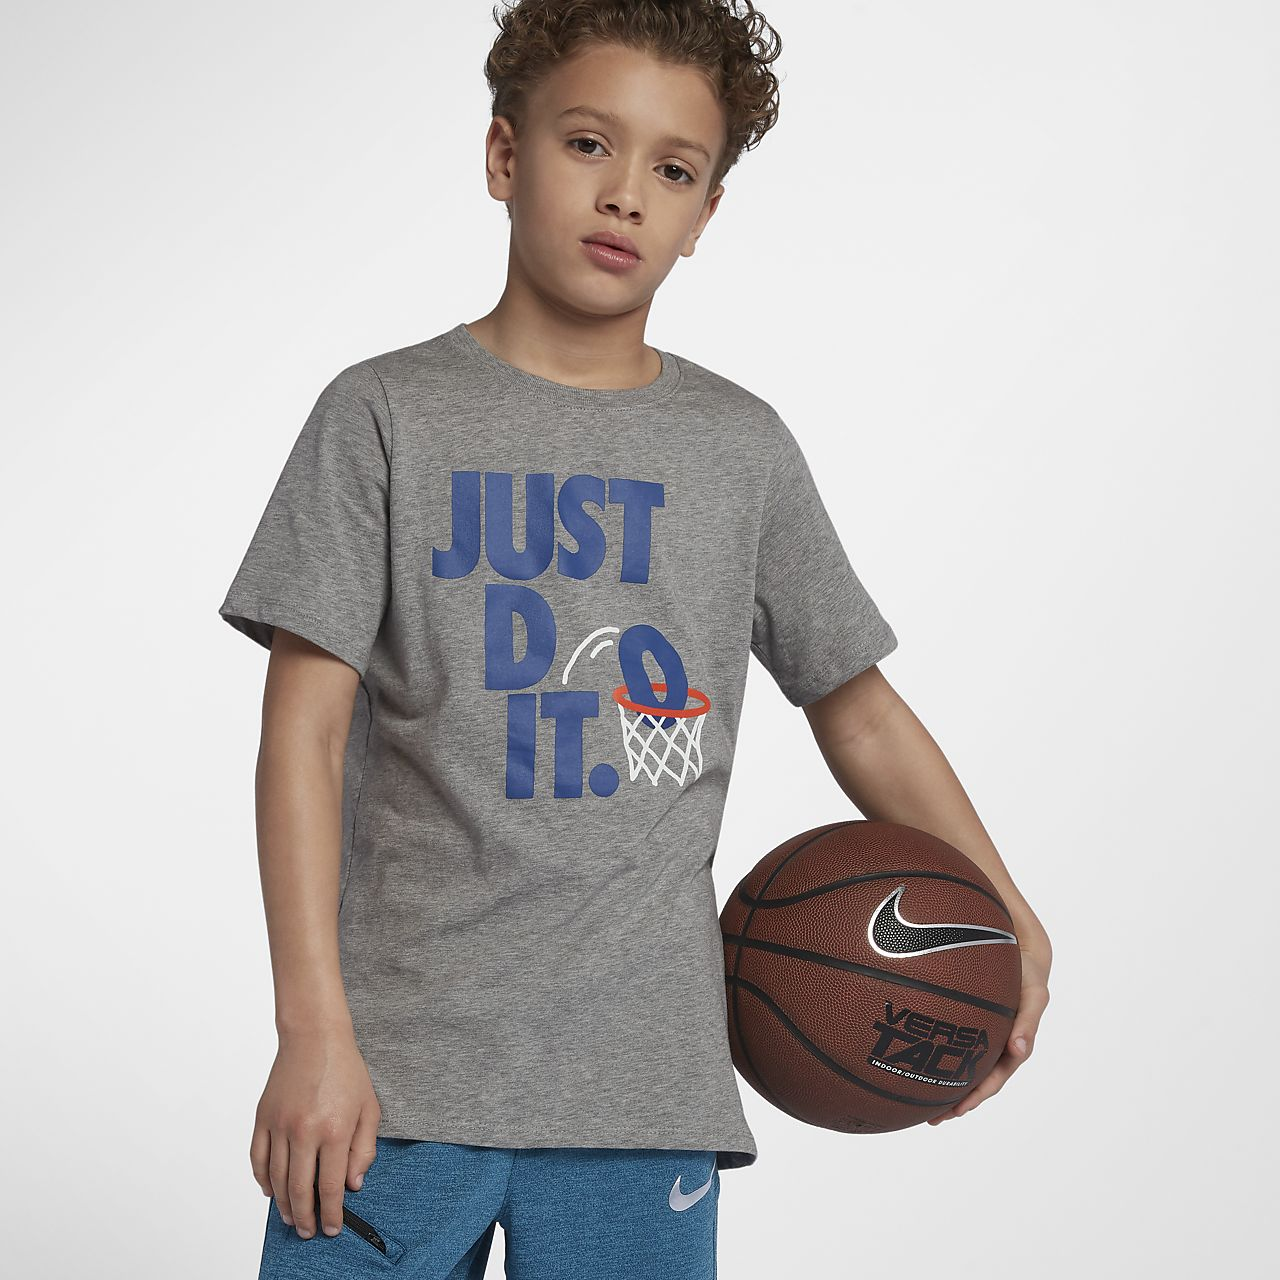 922876d12dd8 Nike Sportswear Just Do It Dunk Big Kids  (Boys ) T-Shirt. Nike.com